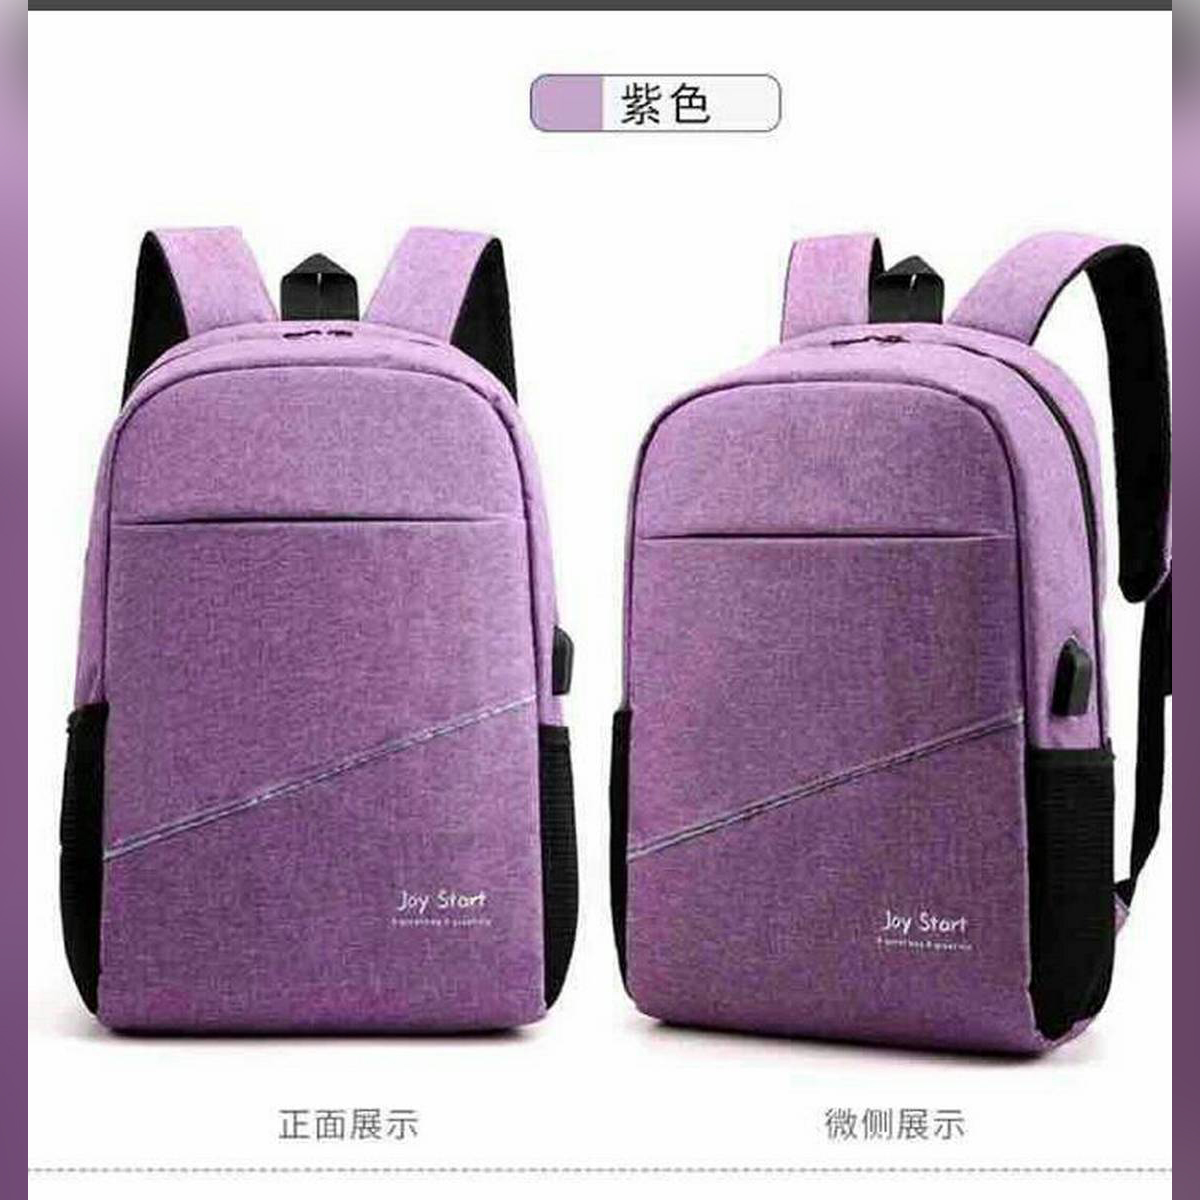 Purple bag for Man and girls